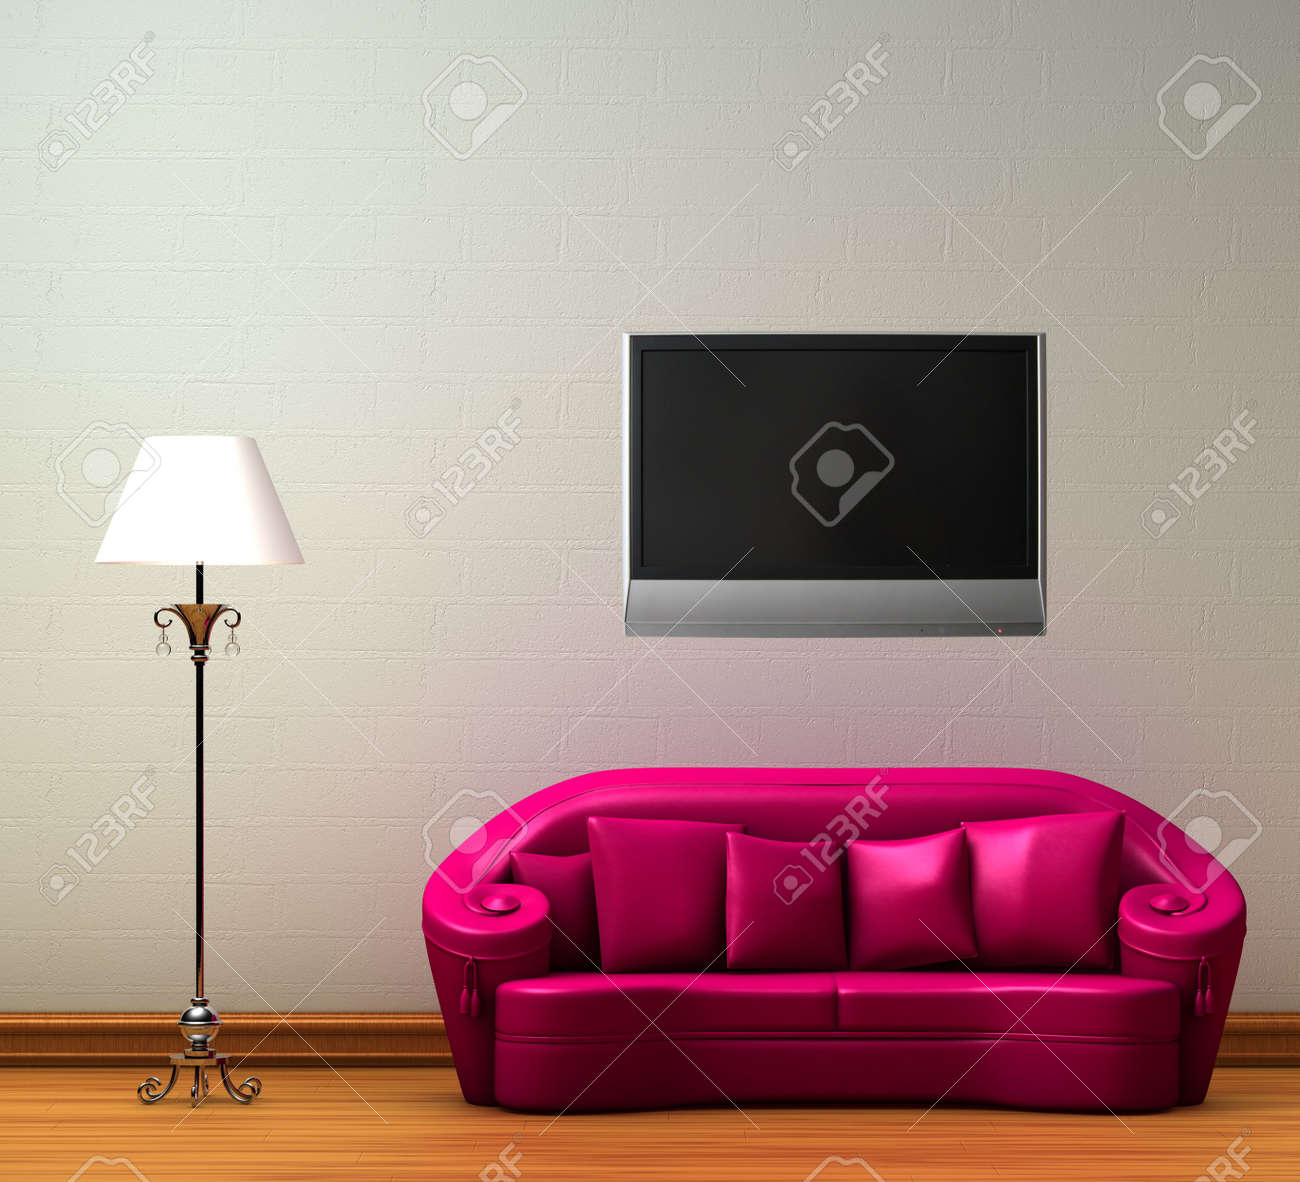 Pink couch with standard lamp with LCD tv on the wall in minimalist interior Stock Photo - 6464315